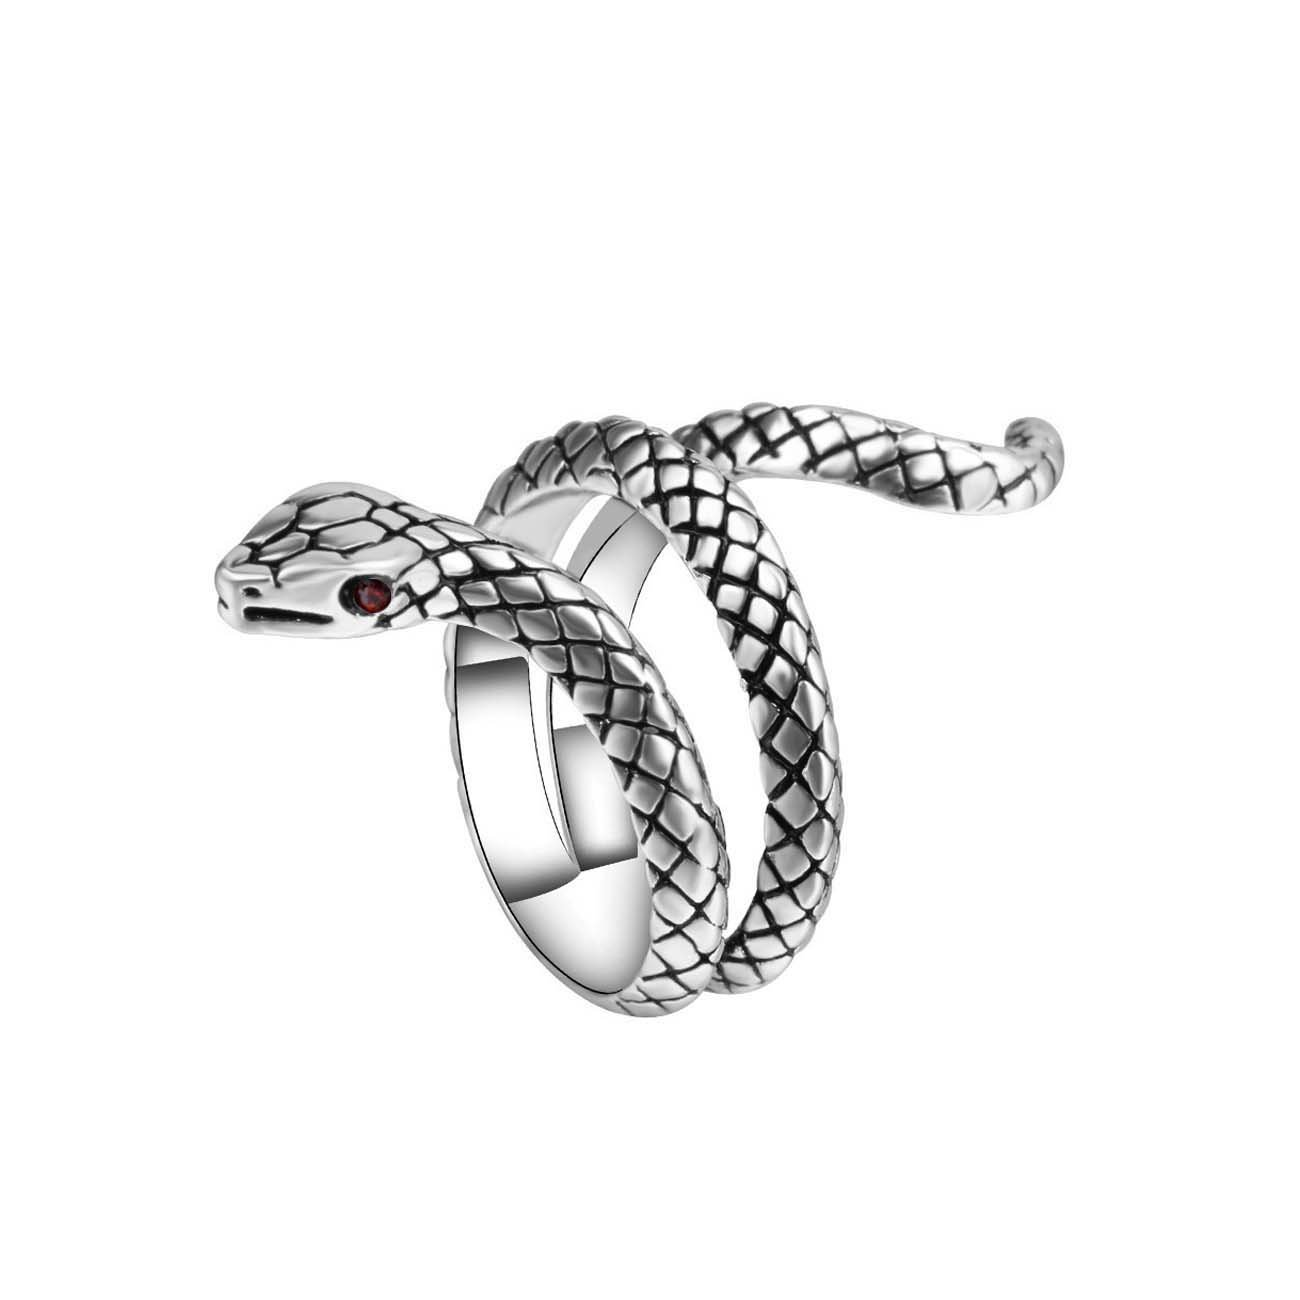 BRBAM Adjustable Gothic Punk Style Coiled Snake Ring Unisex Retro Jewelry Gift B07HHF37F9_US